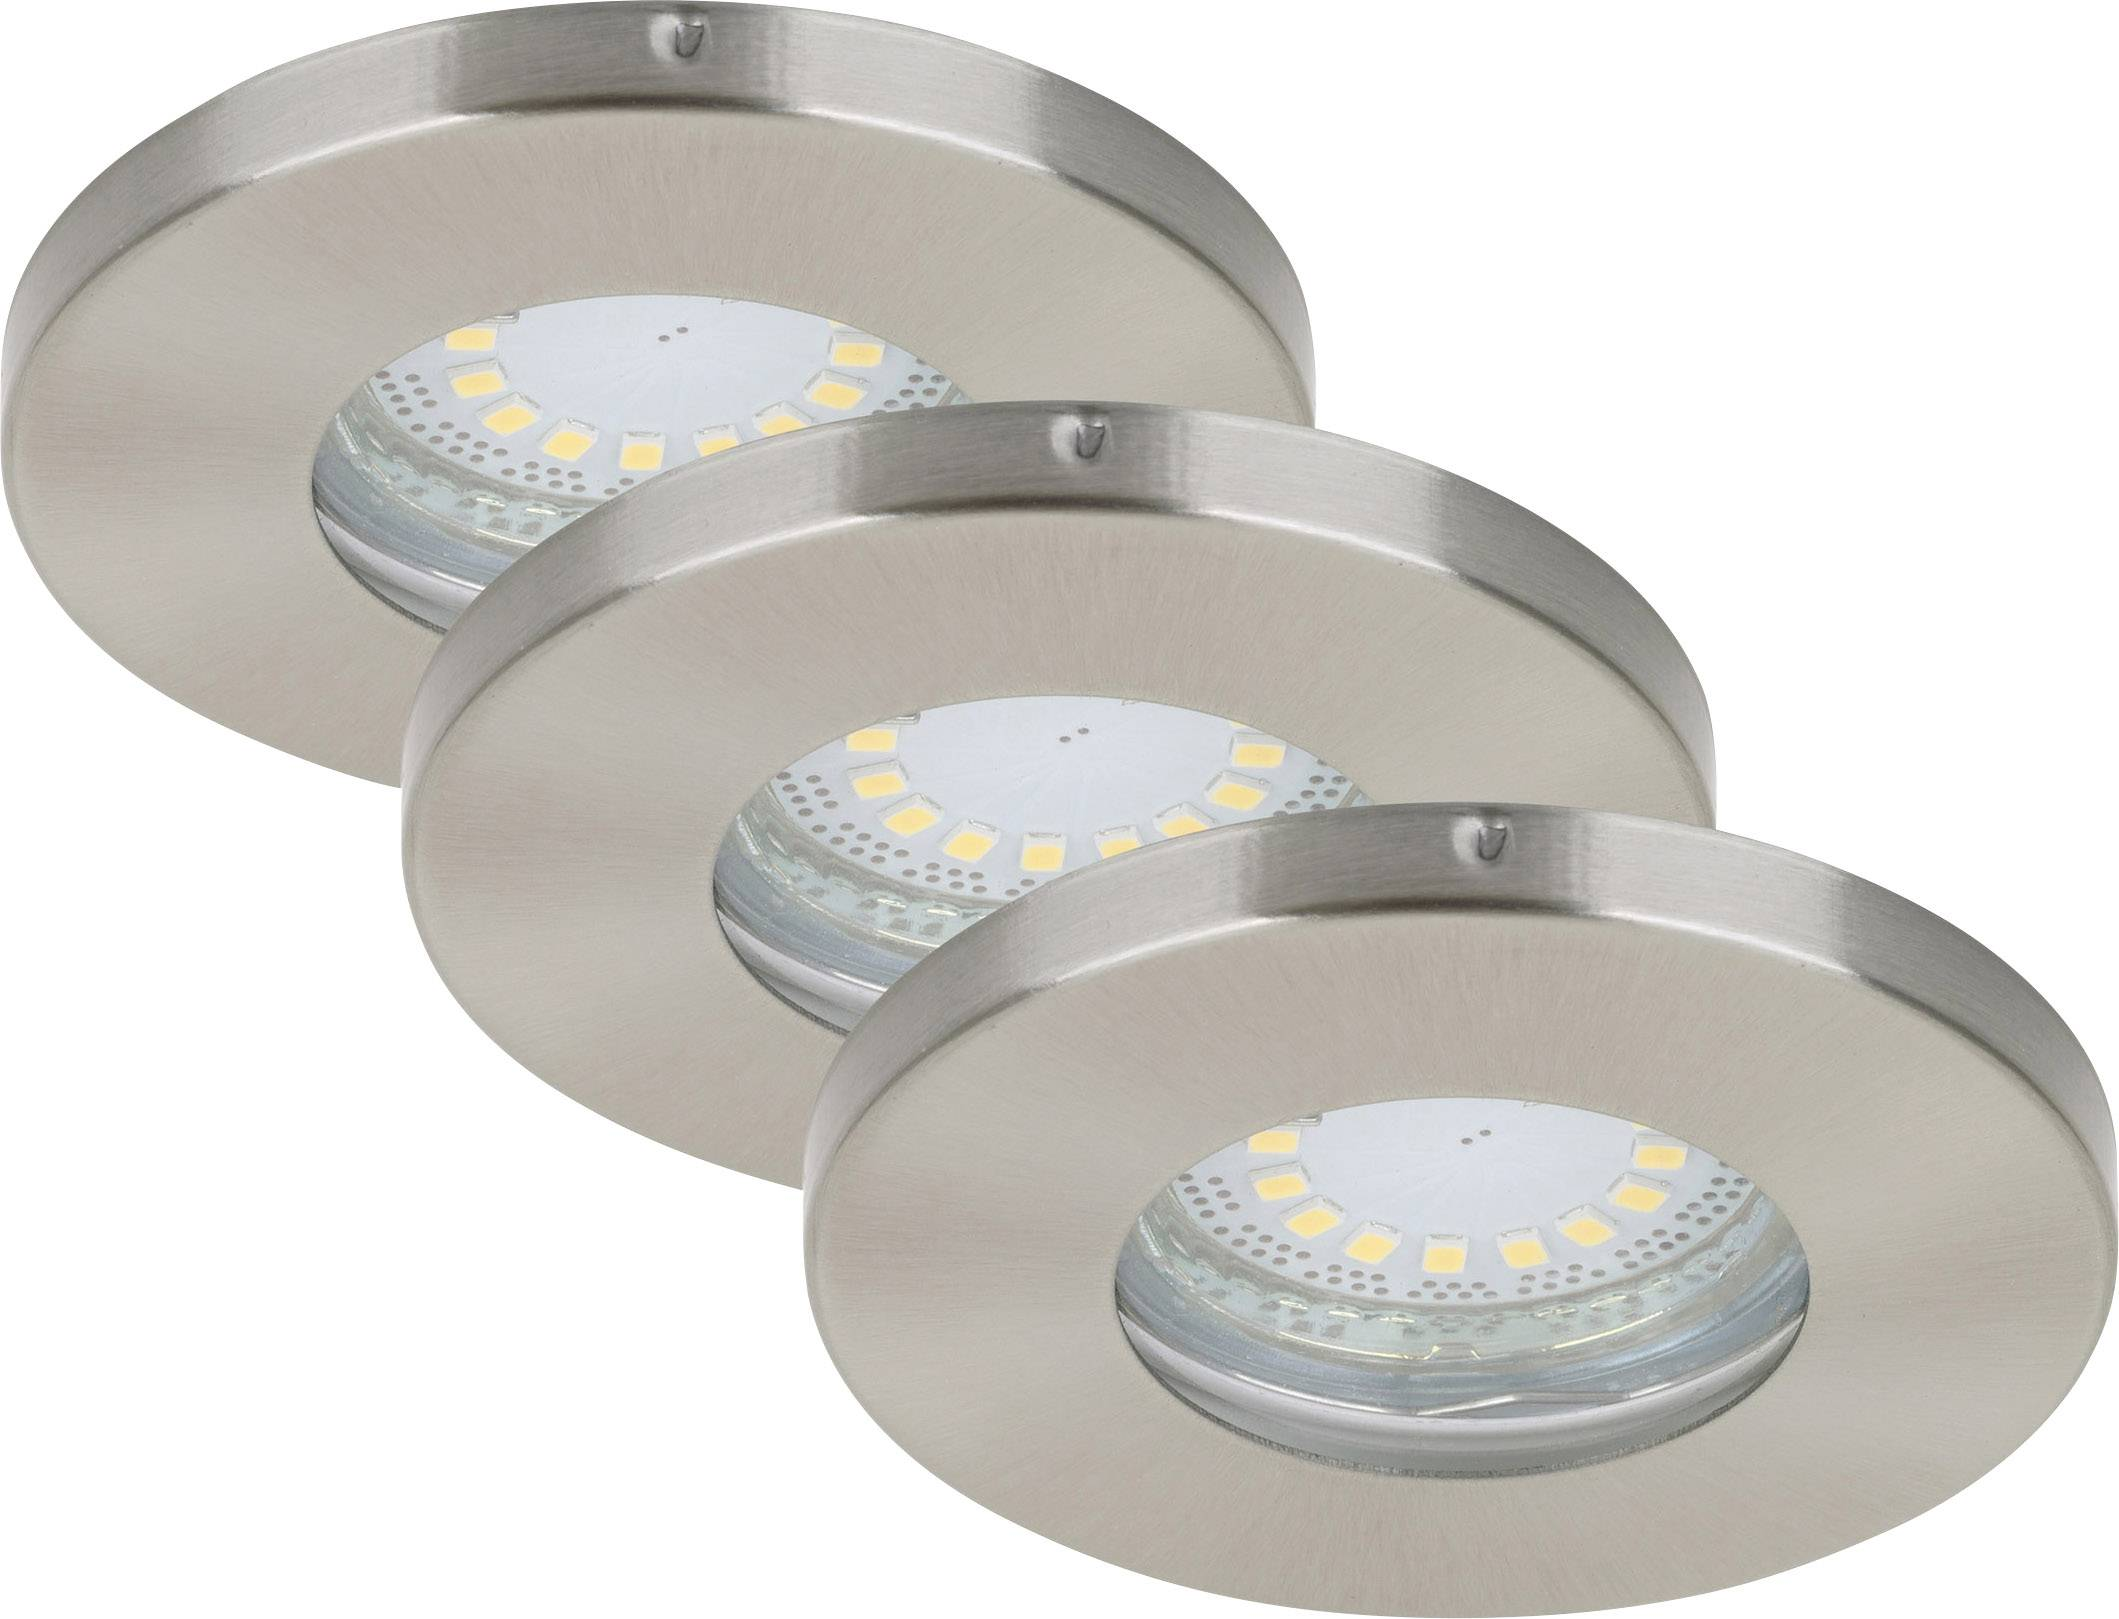 Bad Led Einbauleuchten Briloner Bathroom Recessed Light Led Eec A A E Gu10 12 W Ip44 Nickel Matt